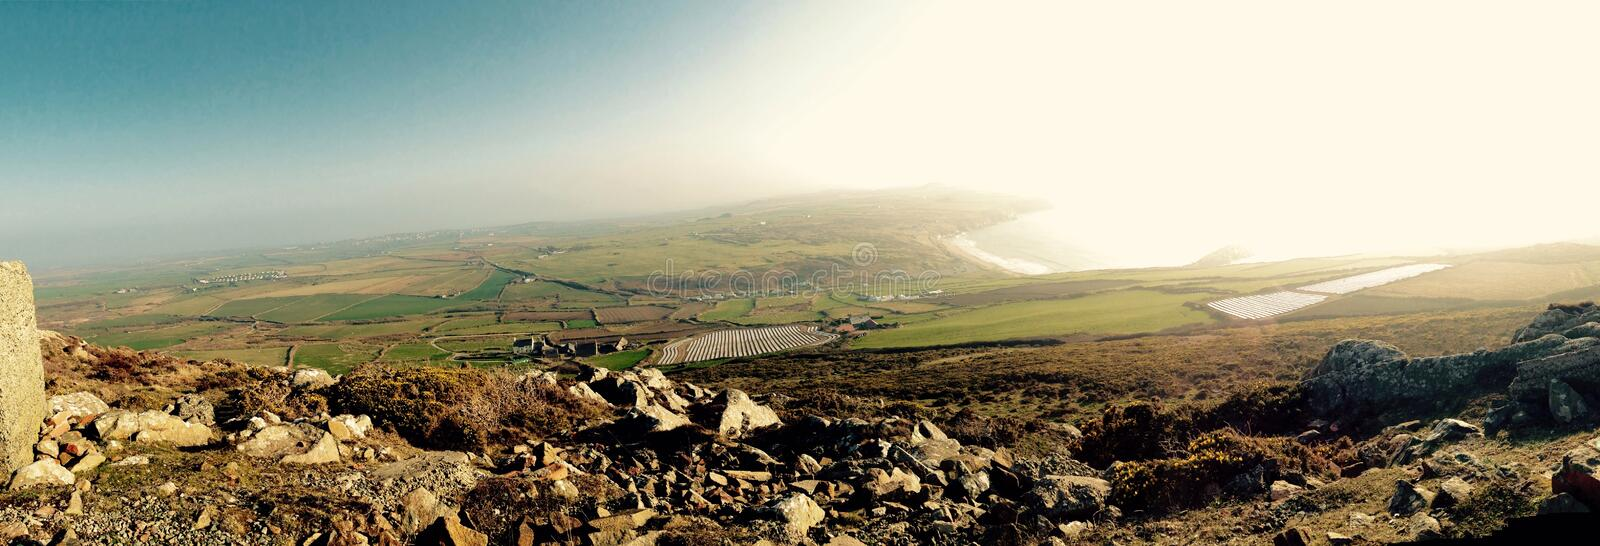 St.davids. View from top of carn llidi mountain stock photography